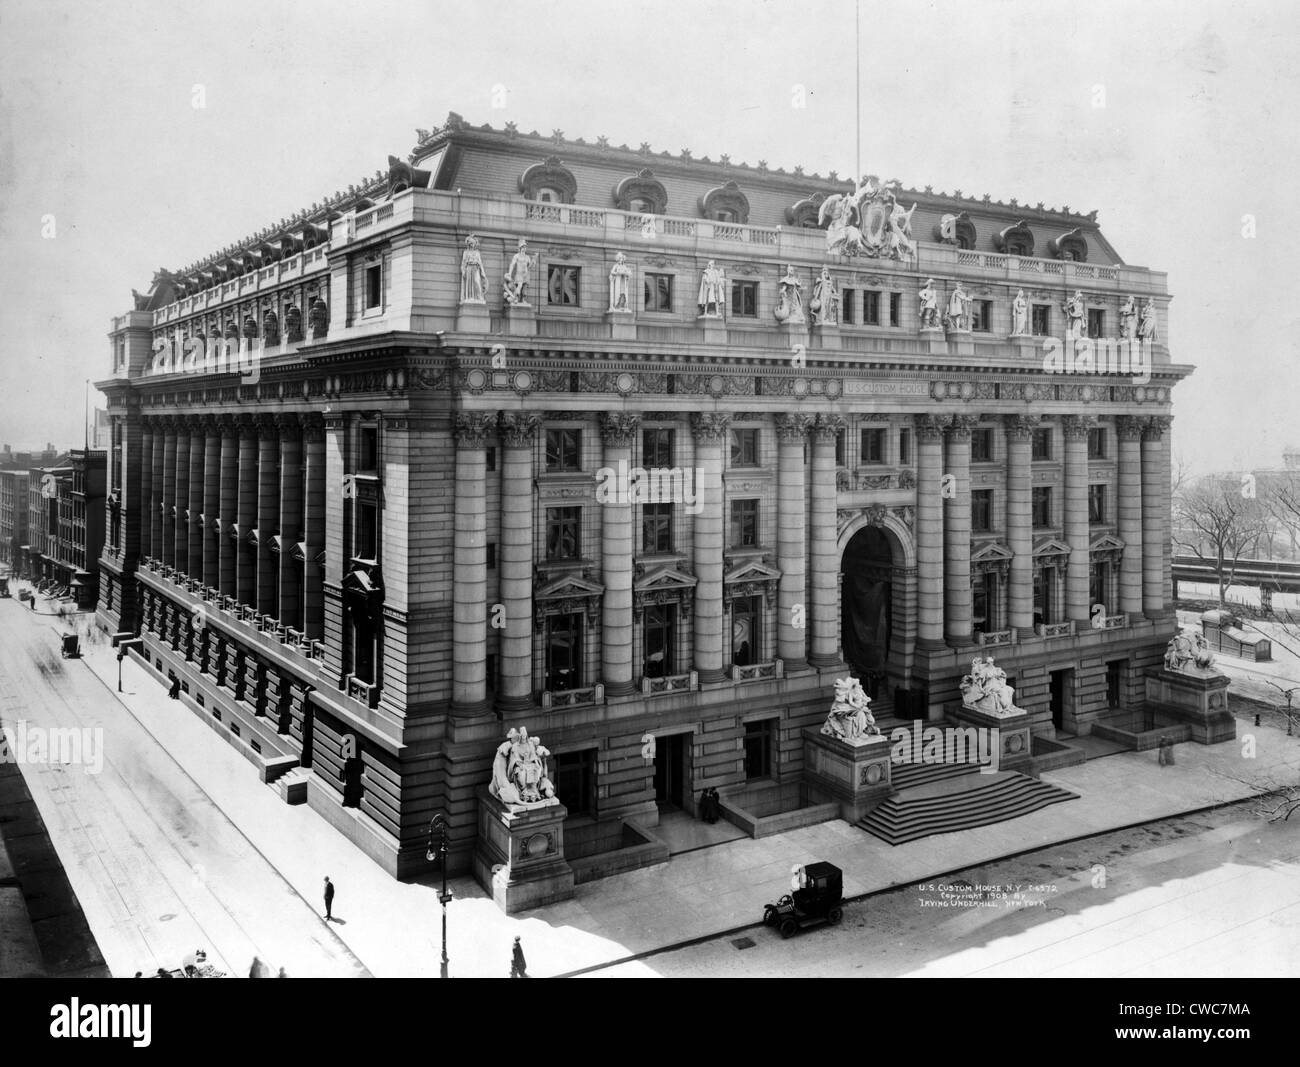 U. S. Custom House N.Y. 1908 - Stock Image